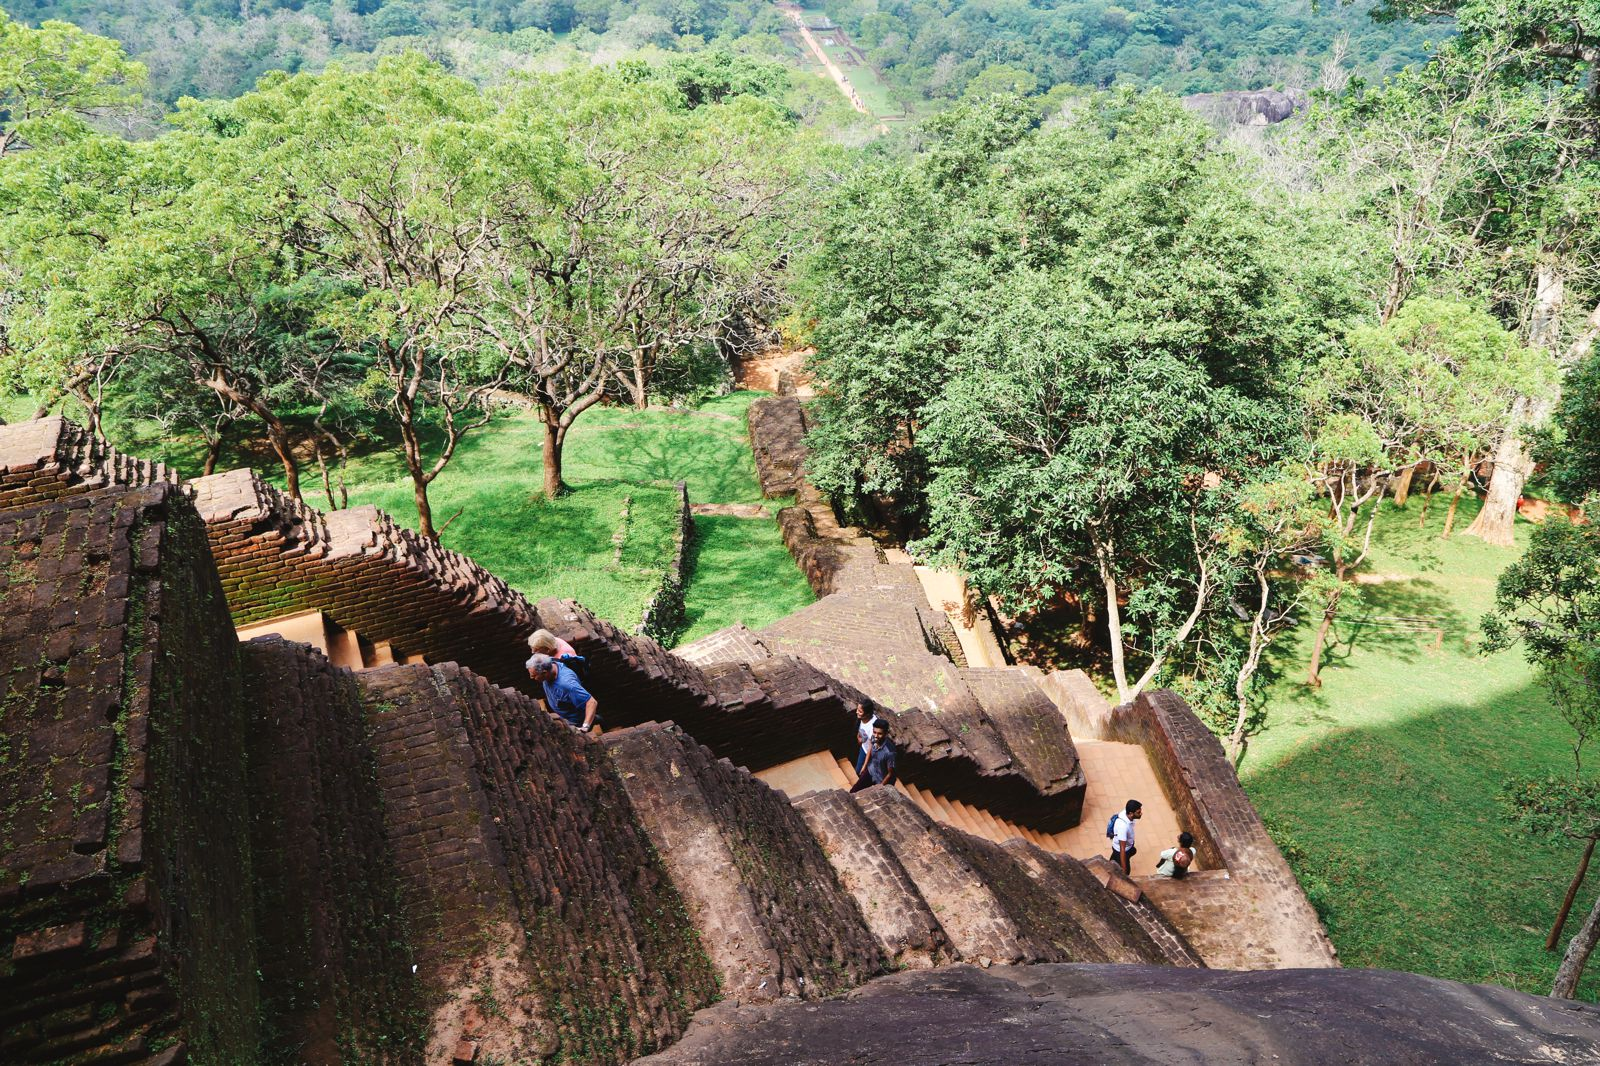 The Complete Guide To Climbing Sri Lanka's UNESCO World Heritage Site Of Sigiriya - Lion Rock (19)